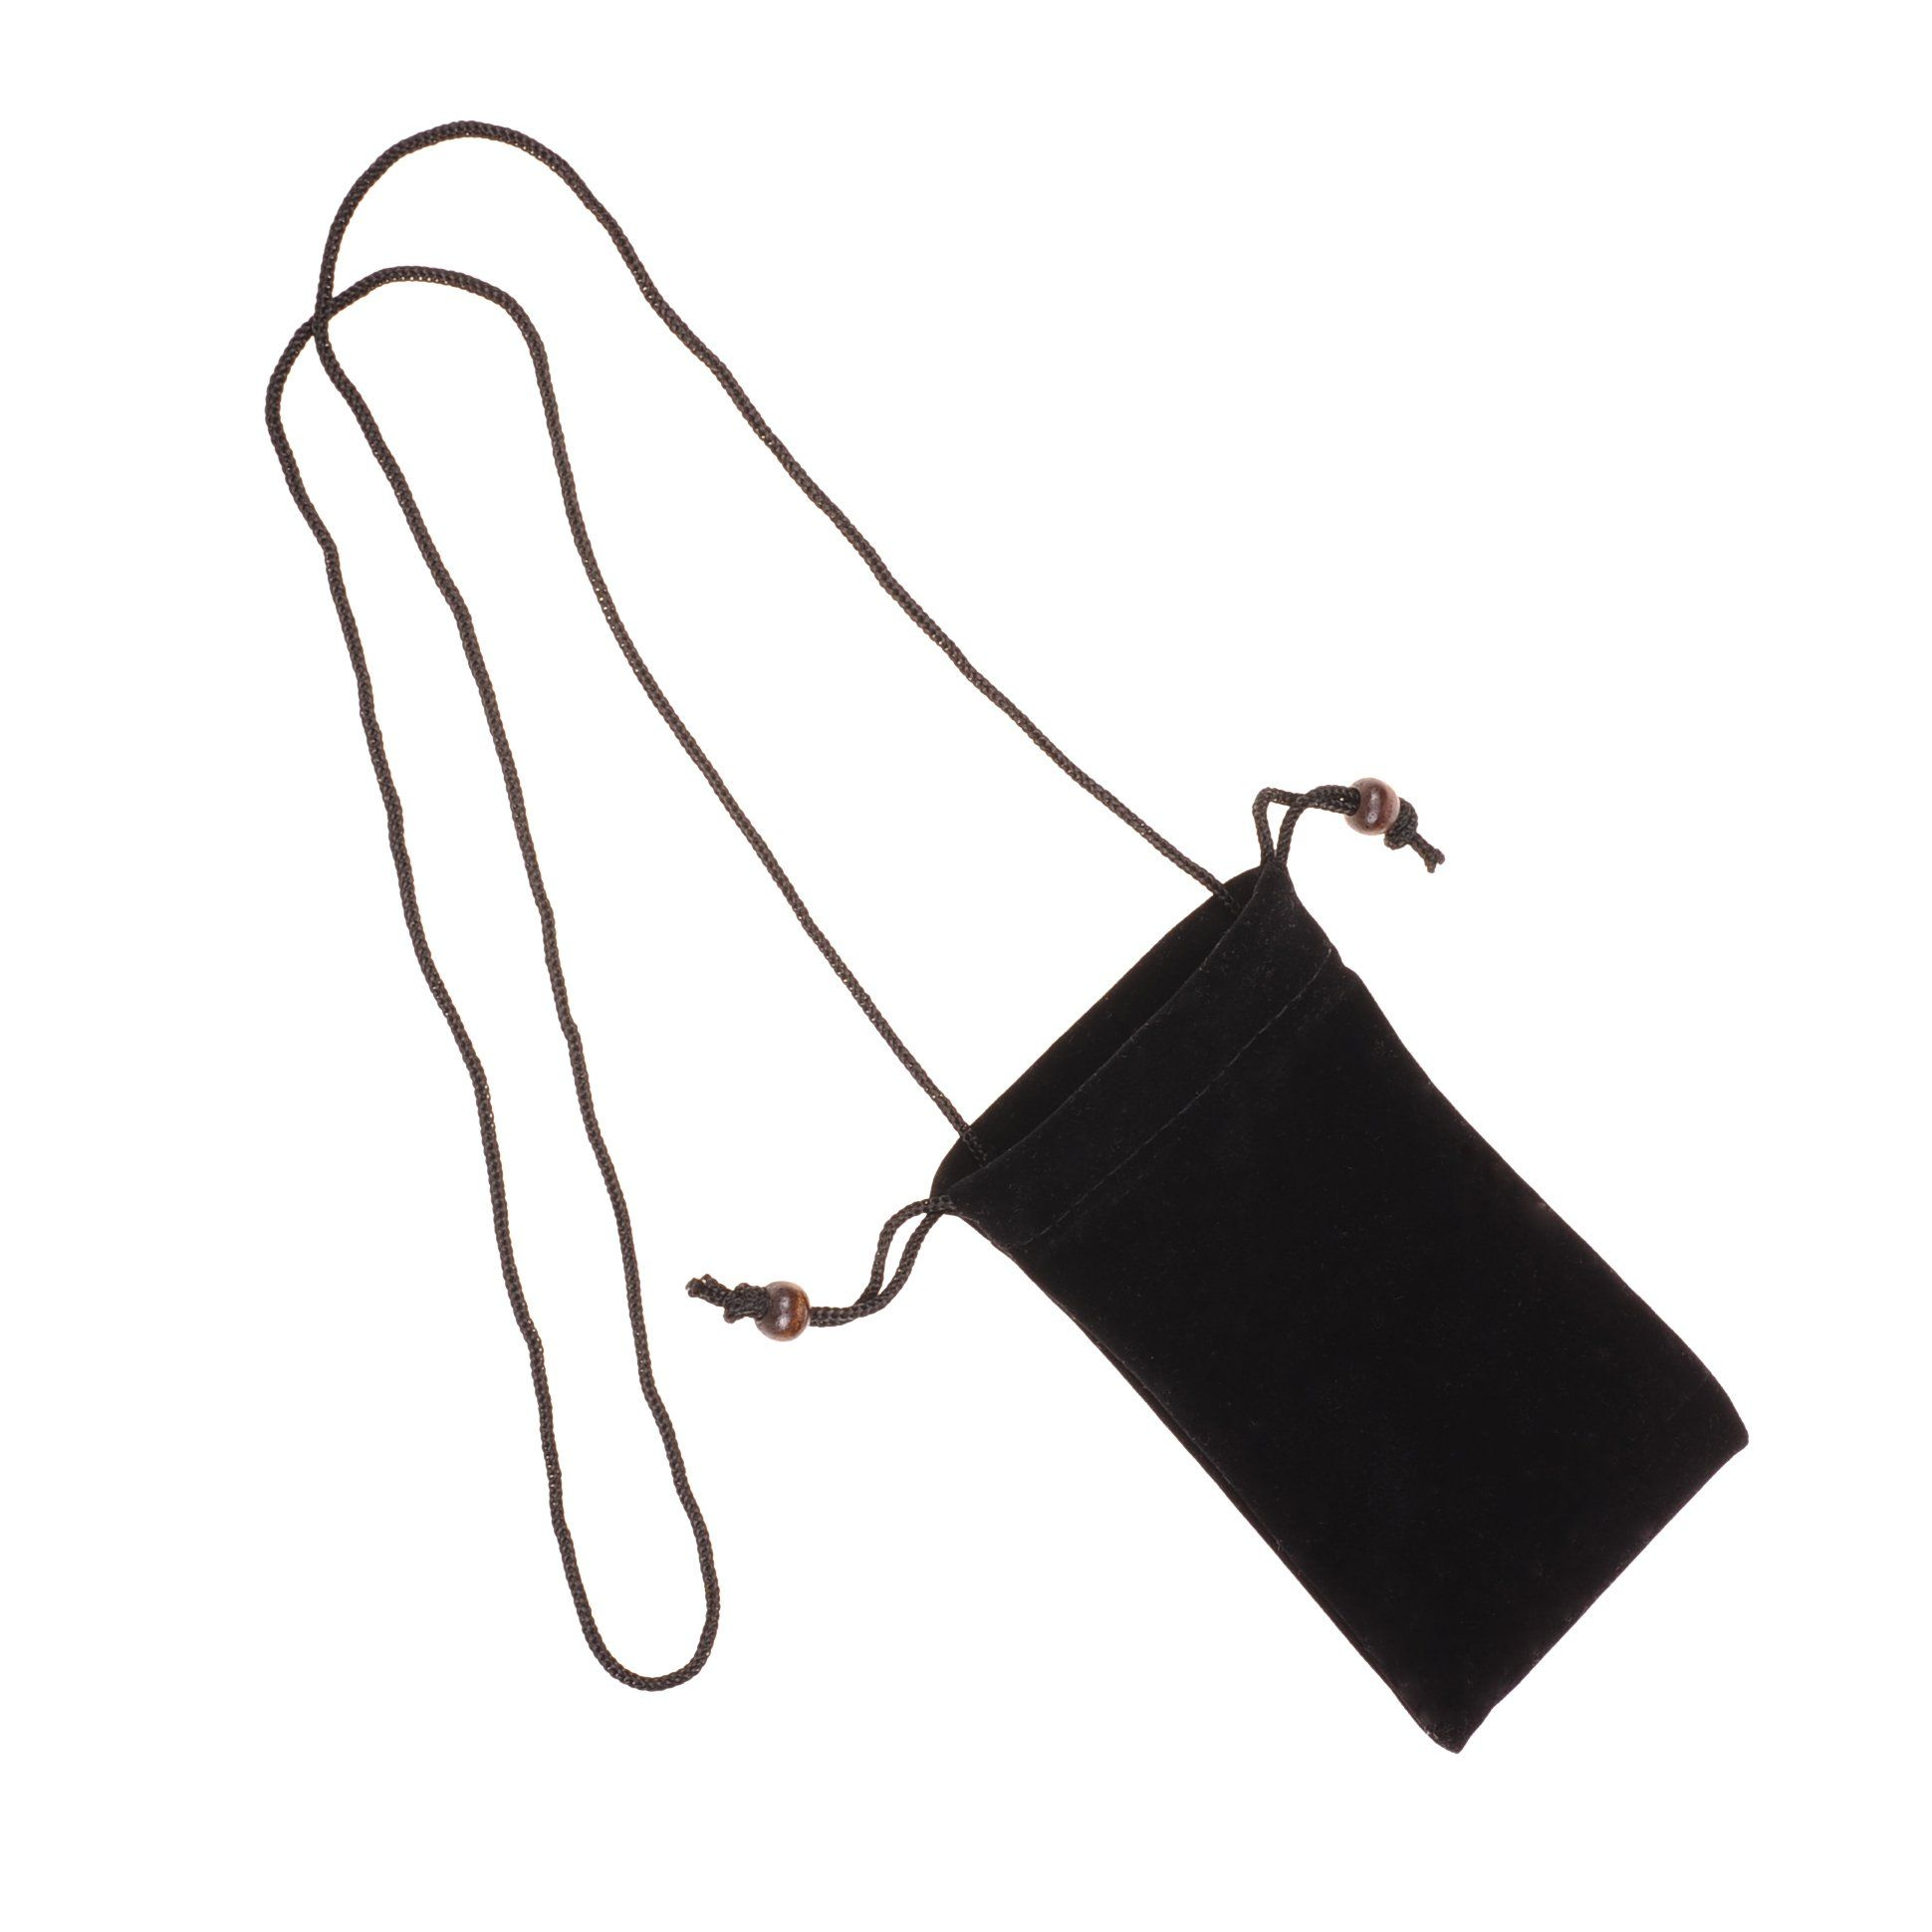 Mobile Phone pouch case bag with neck strap for HTC Desire